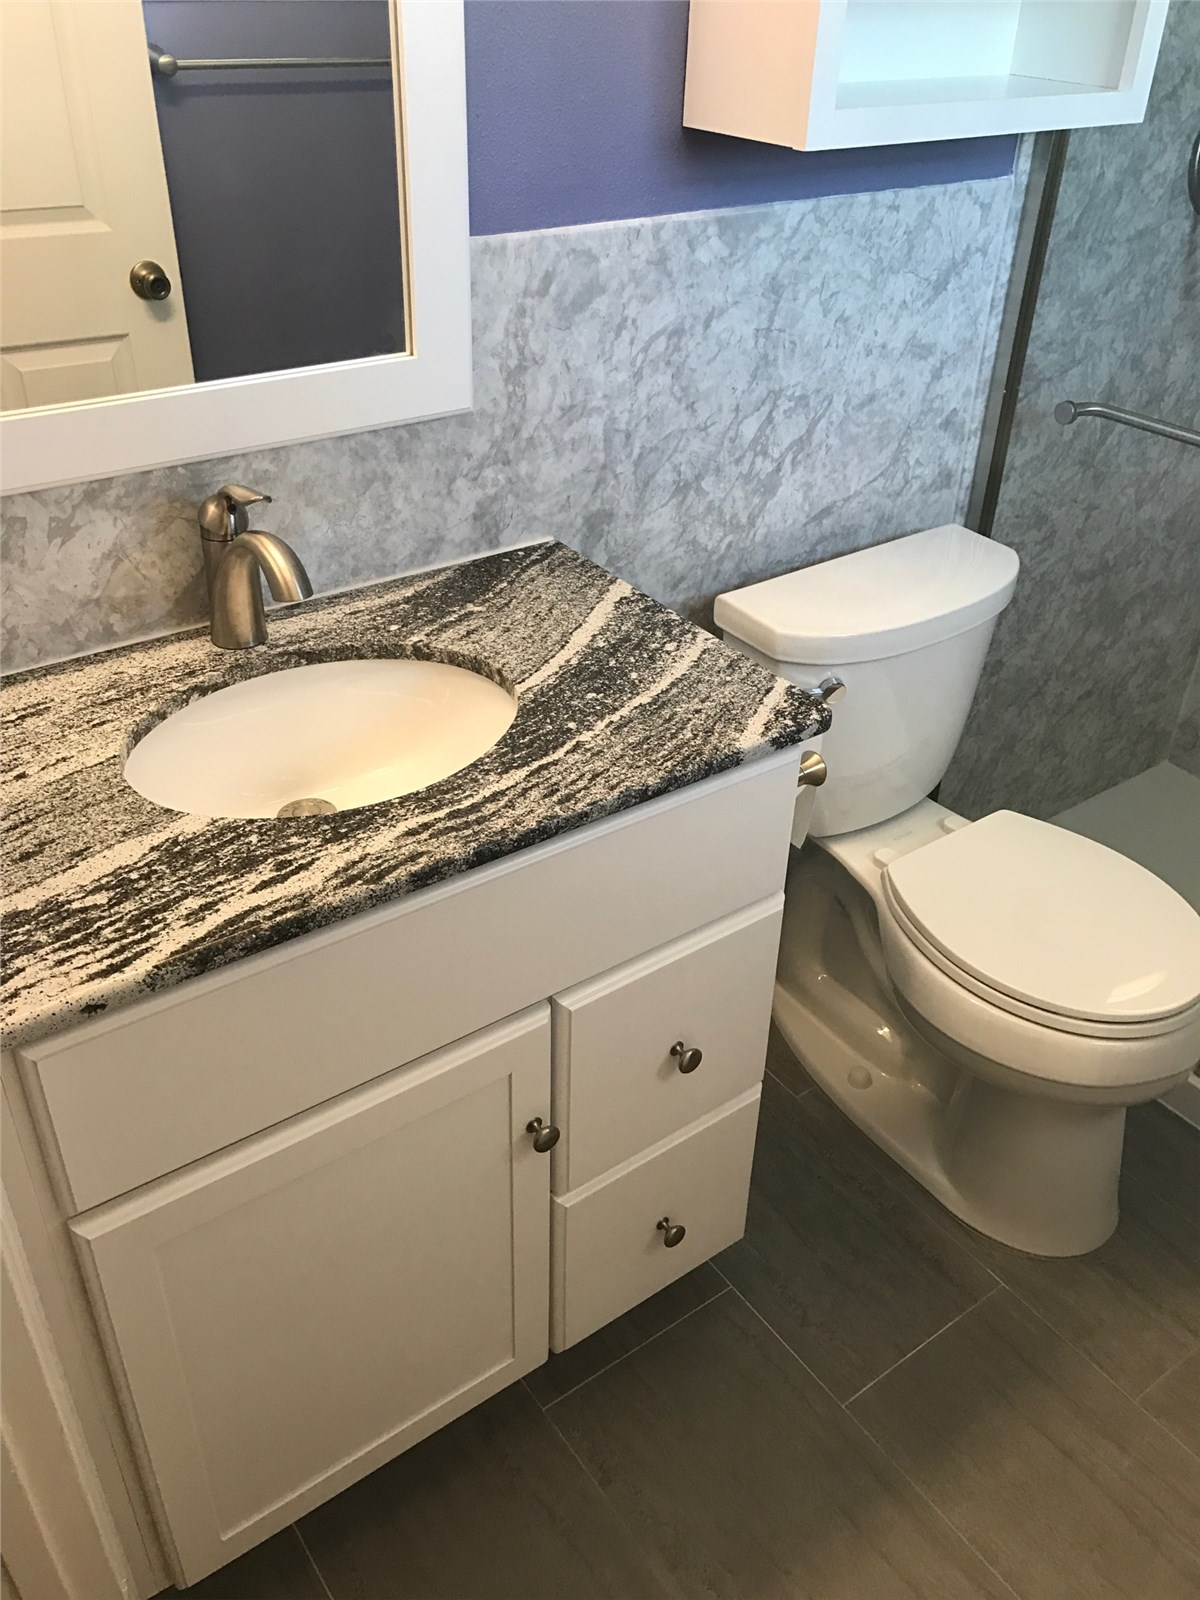 New Port Richey Bathroom Remodeling Bath Shower Replacement - Bathroom remodel new port richey